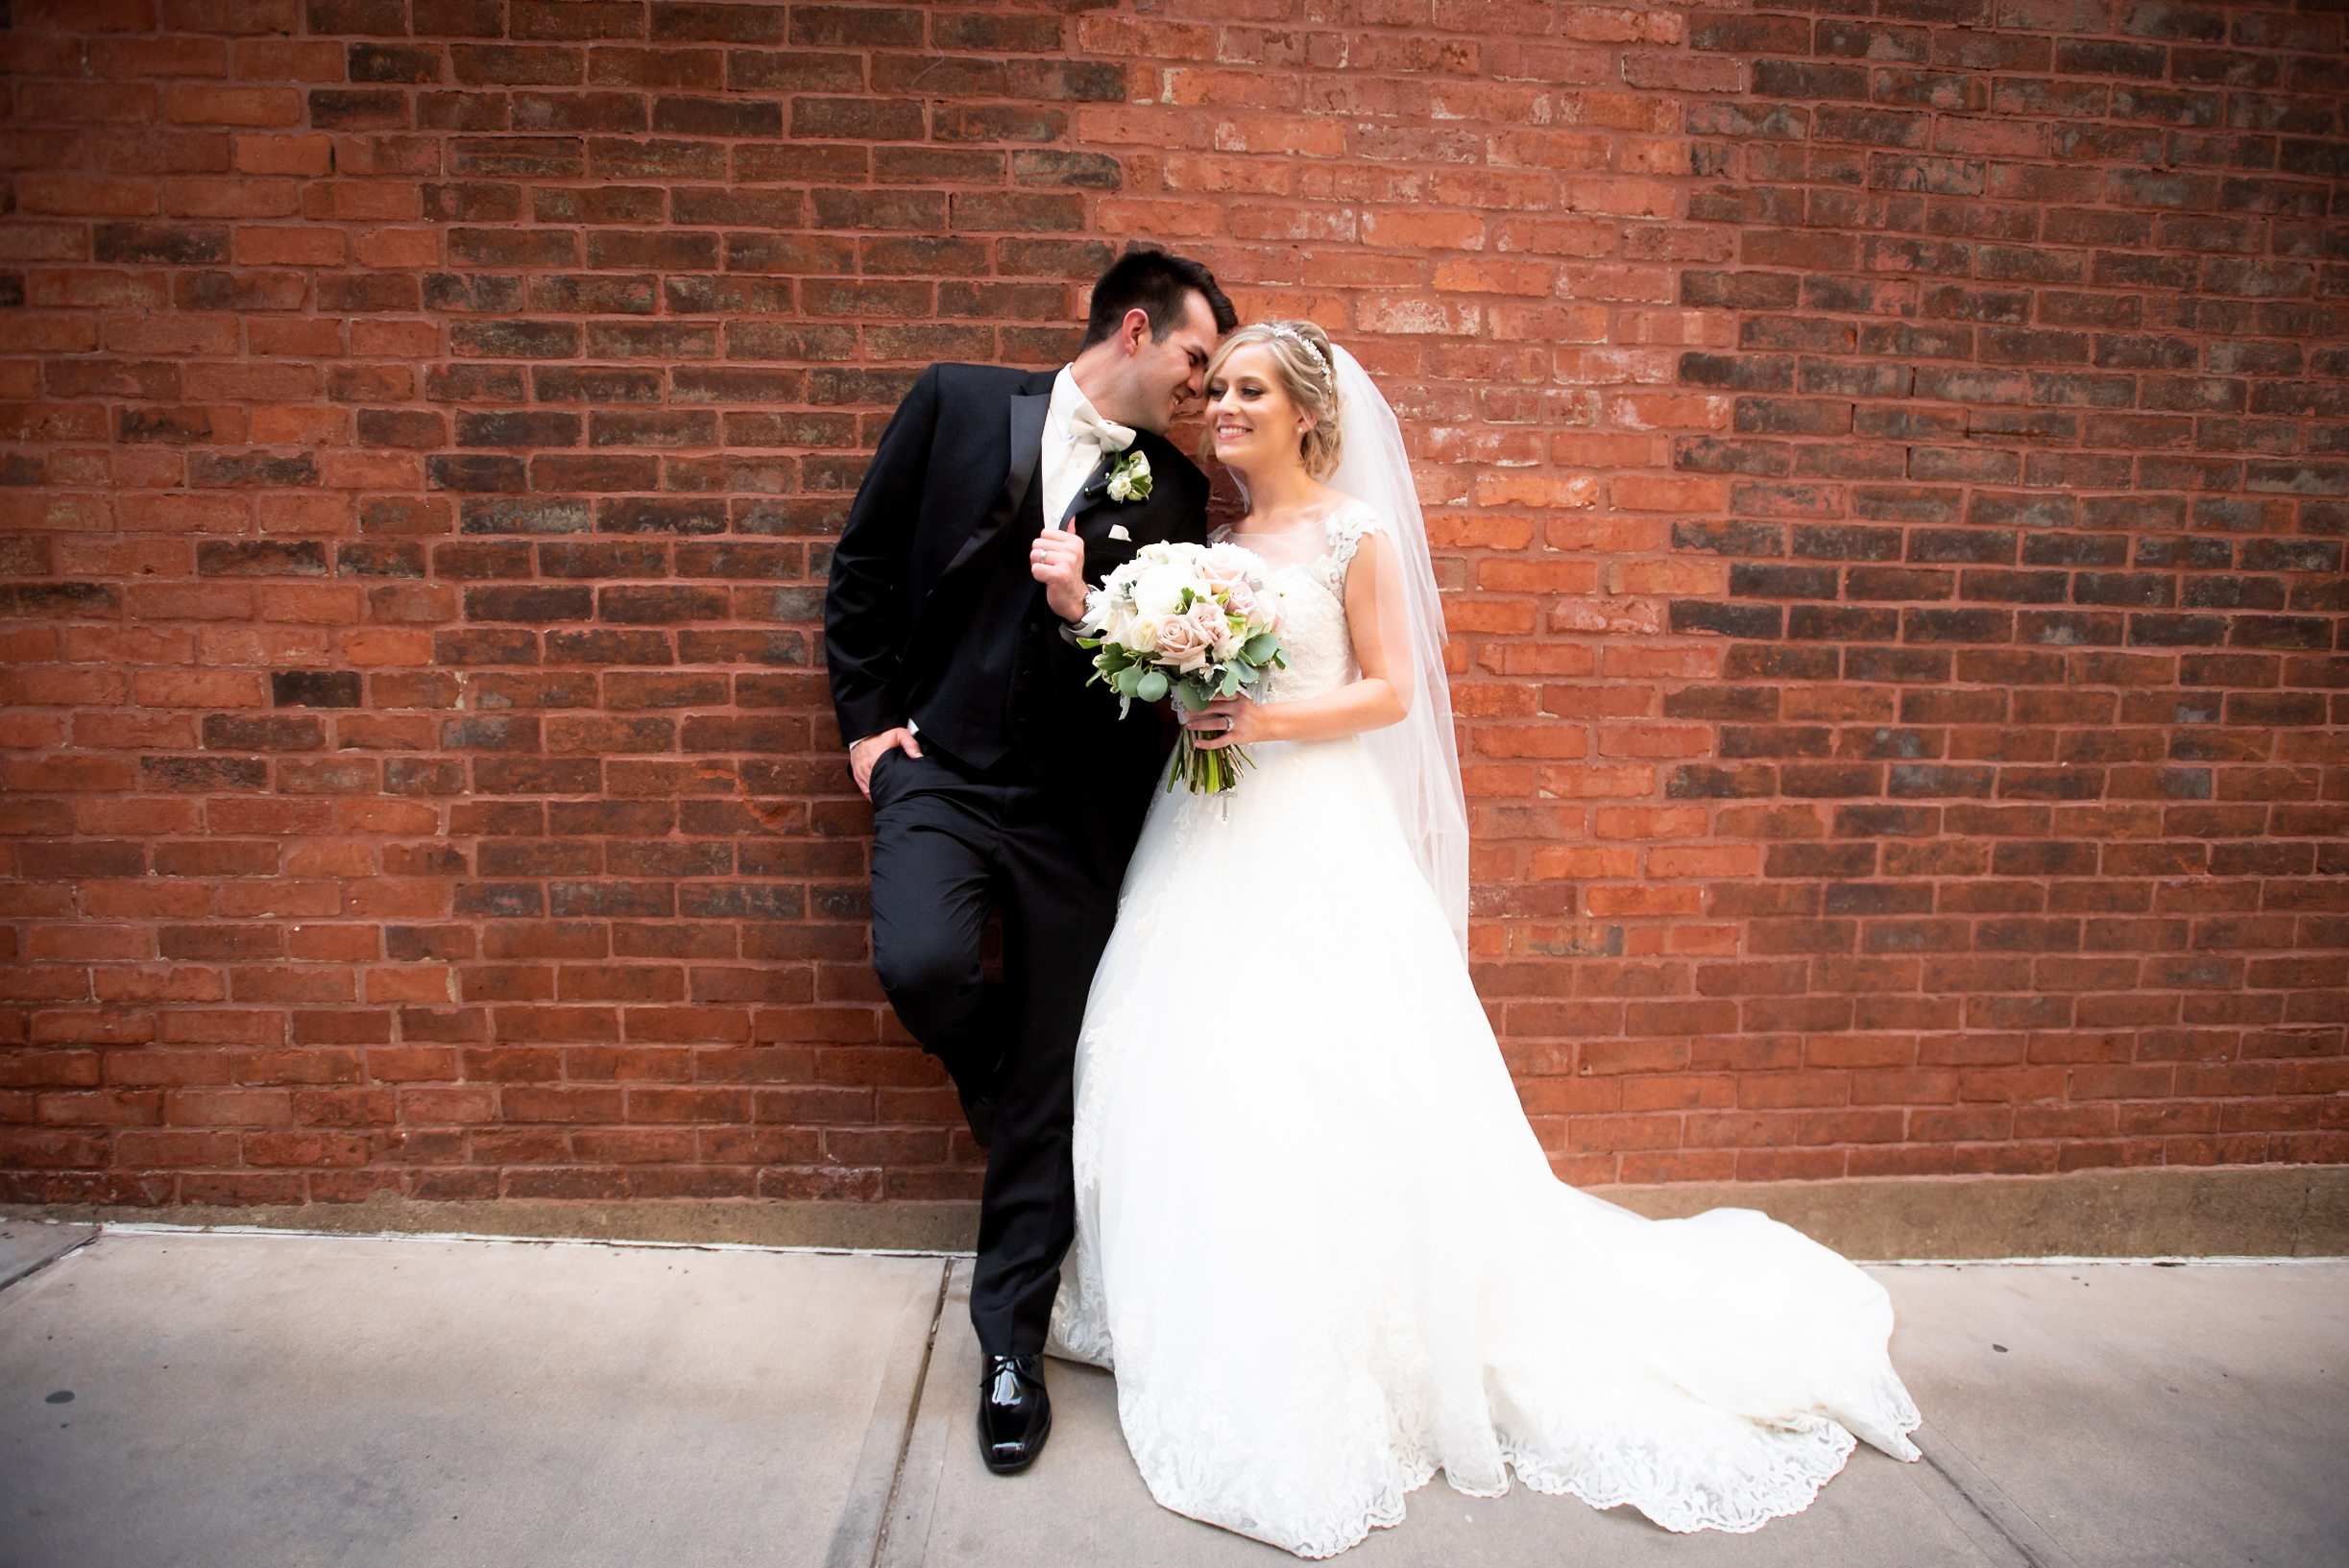 Downtown Pittsburgh Mellon Square Wedding Engagement Picture Locations-16.jpg